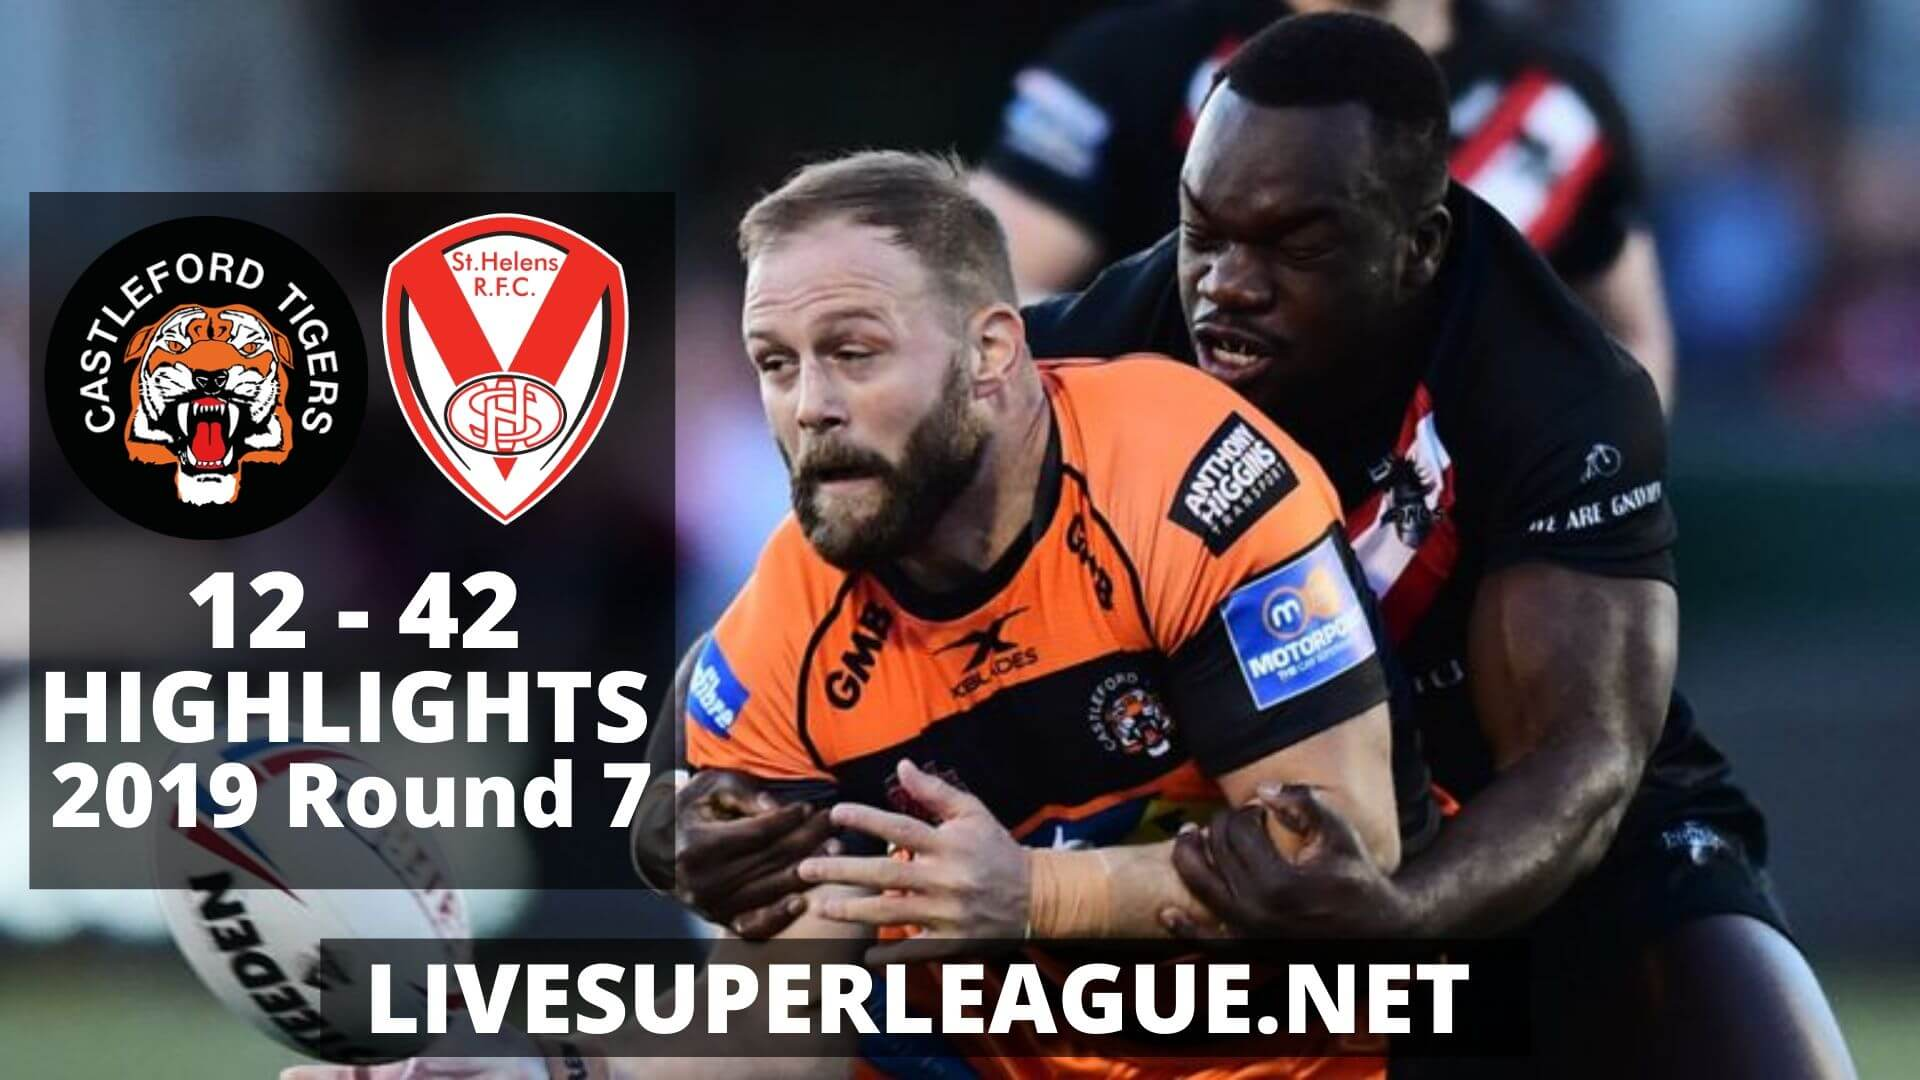 Castleford Tigers vs St Helens Highlights 2019 Round 7